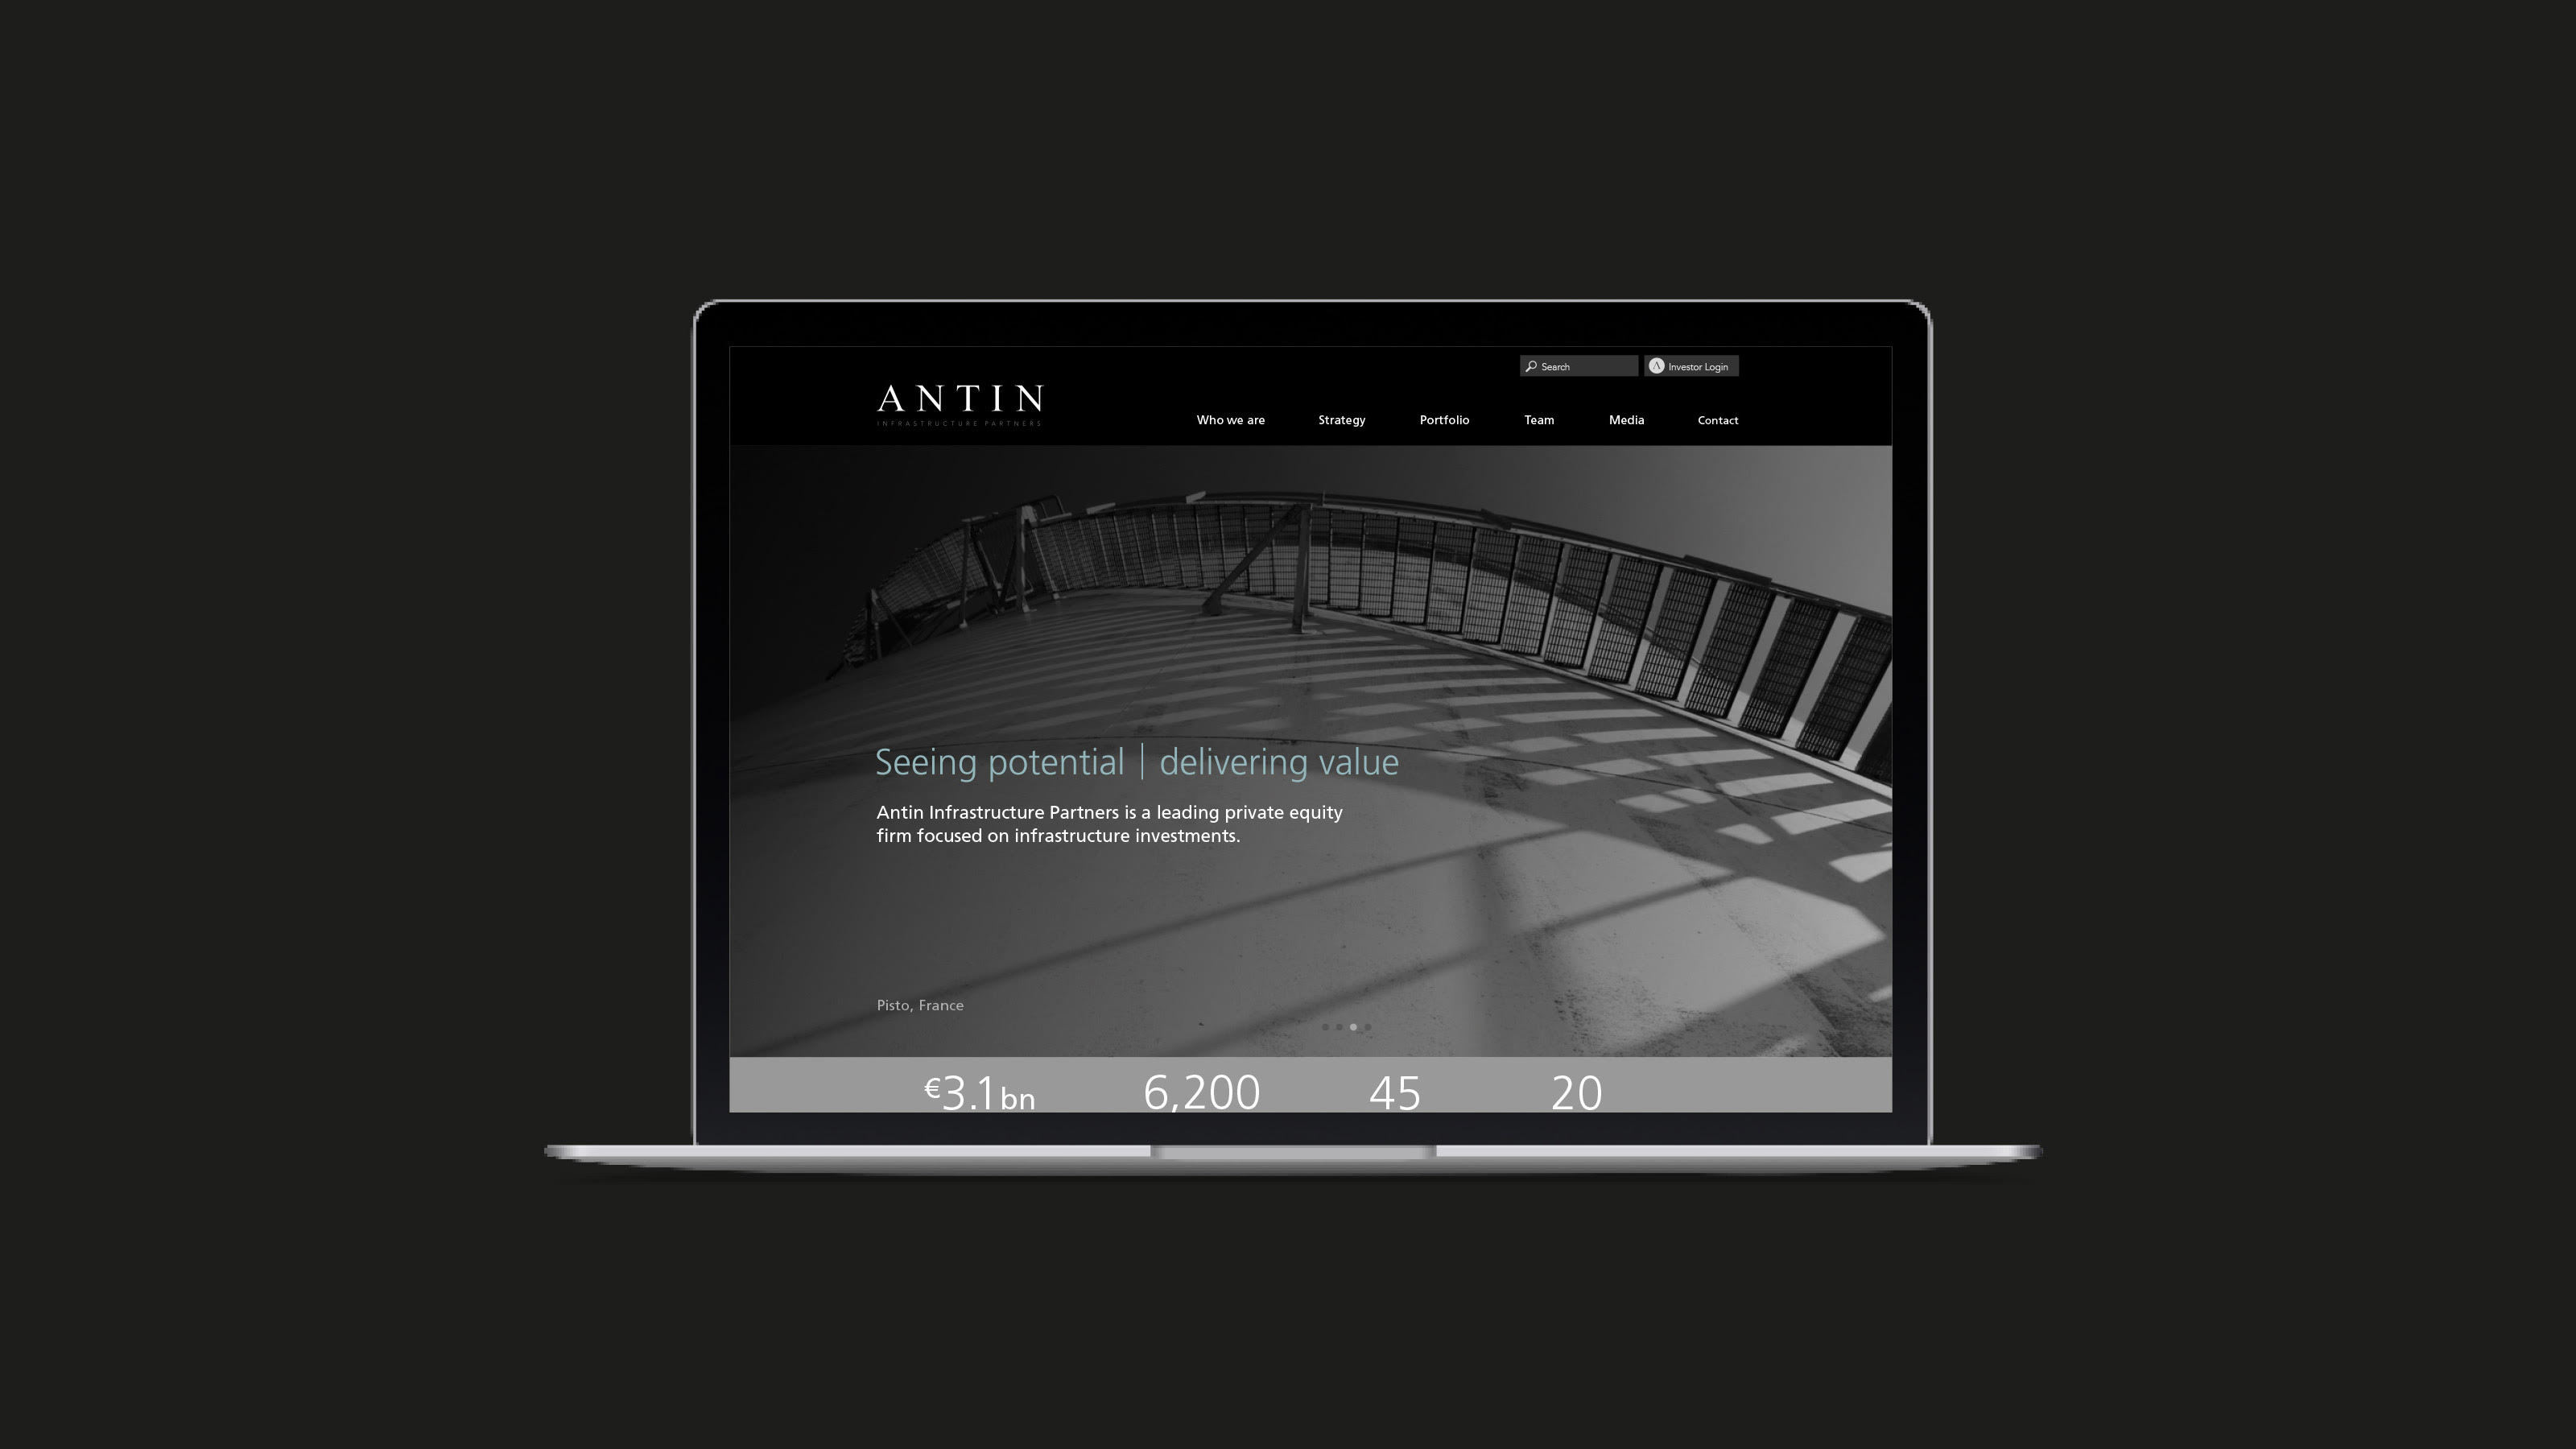 Antin digital home page design